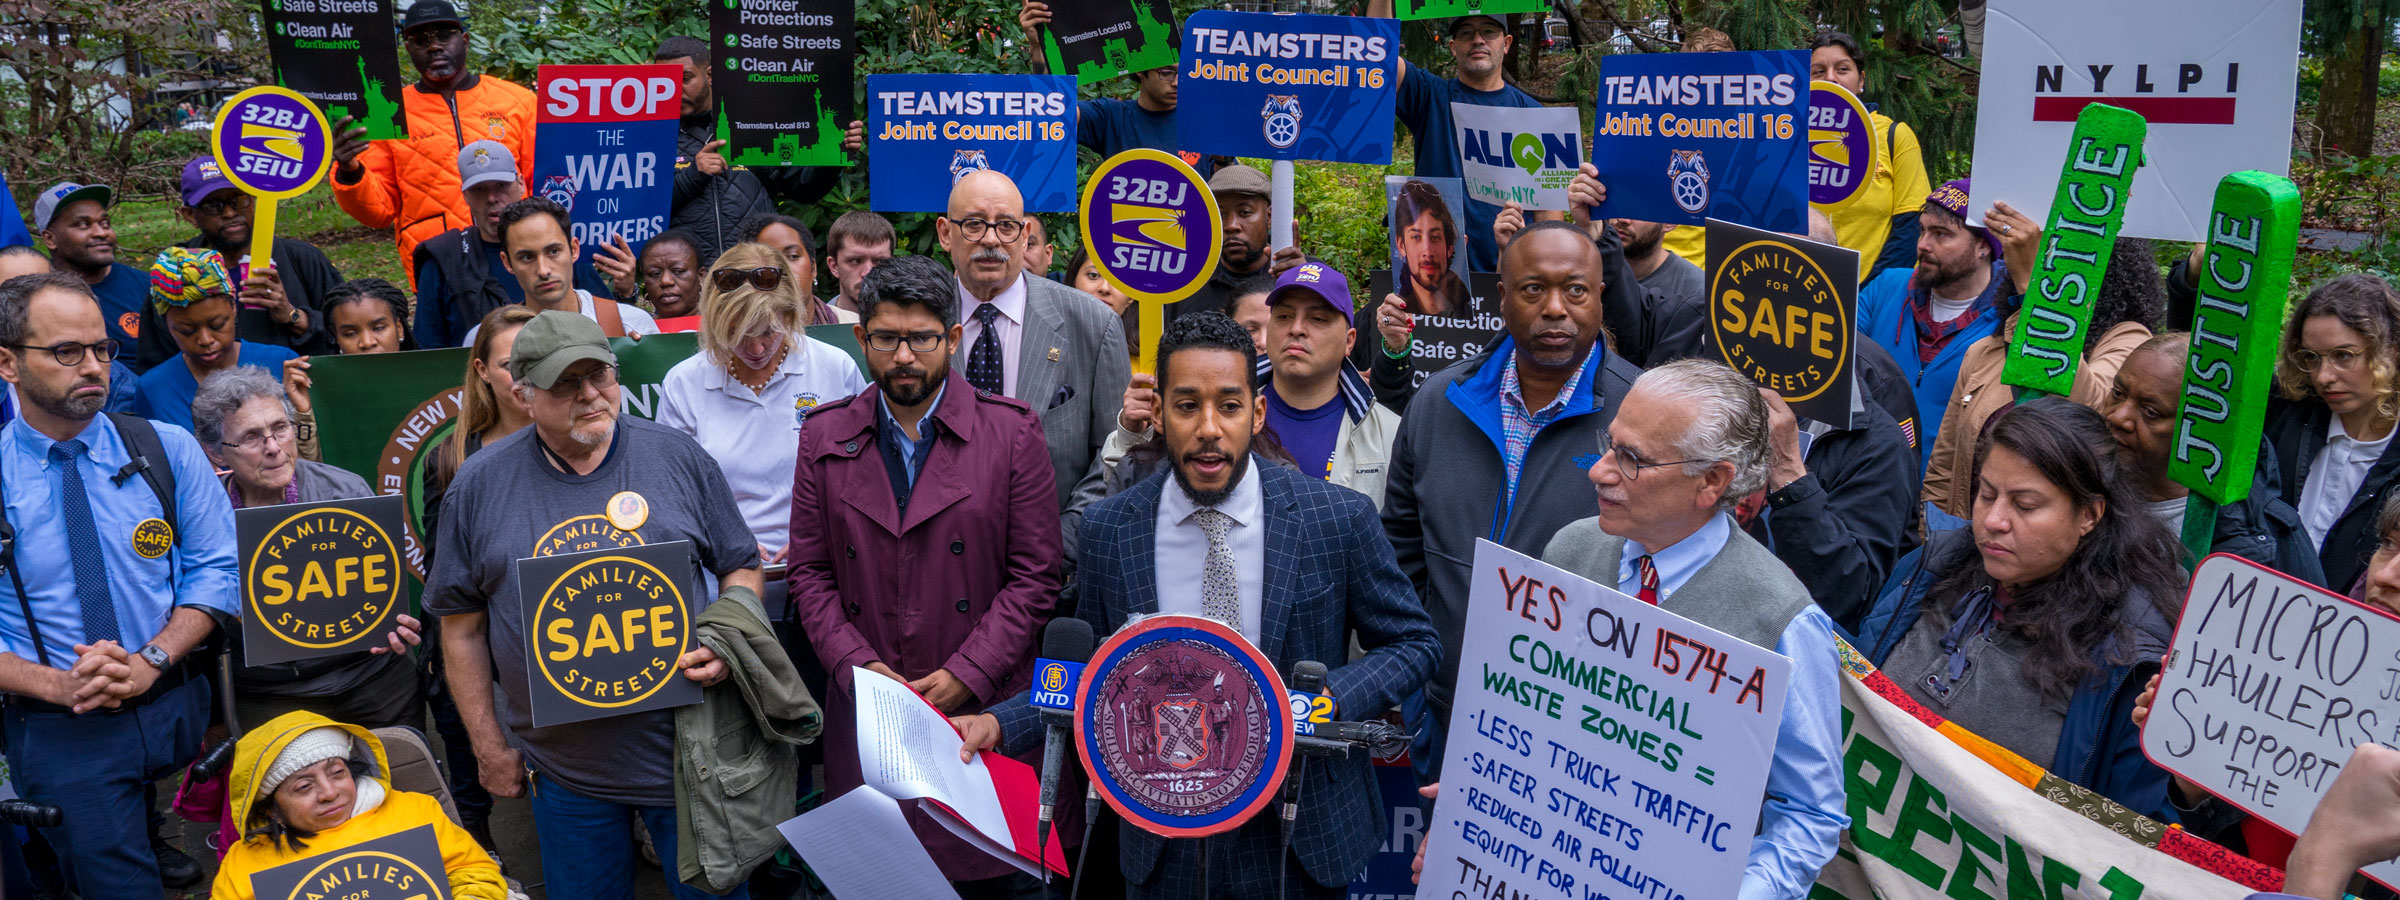 Teamsters Win Commercial Waste Law